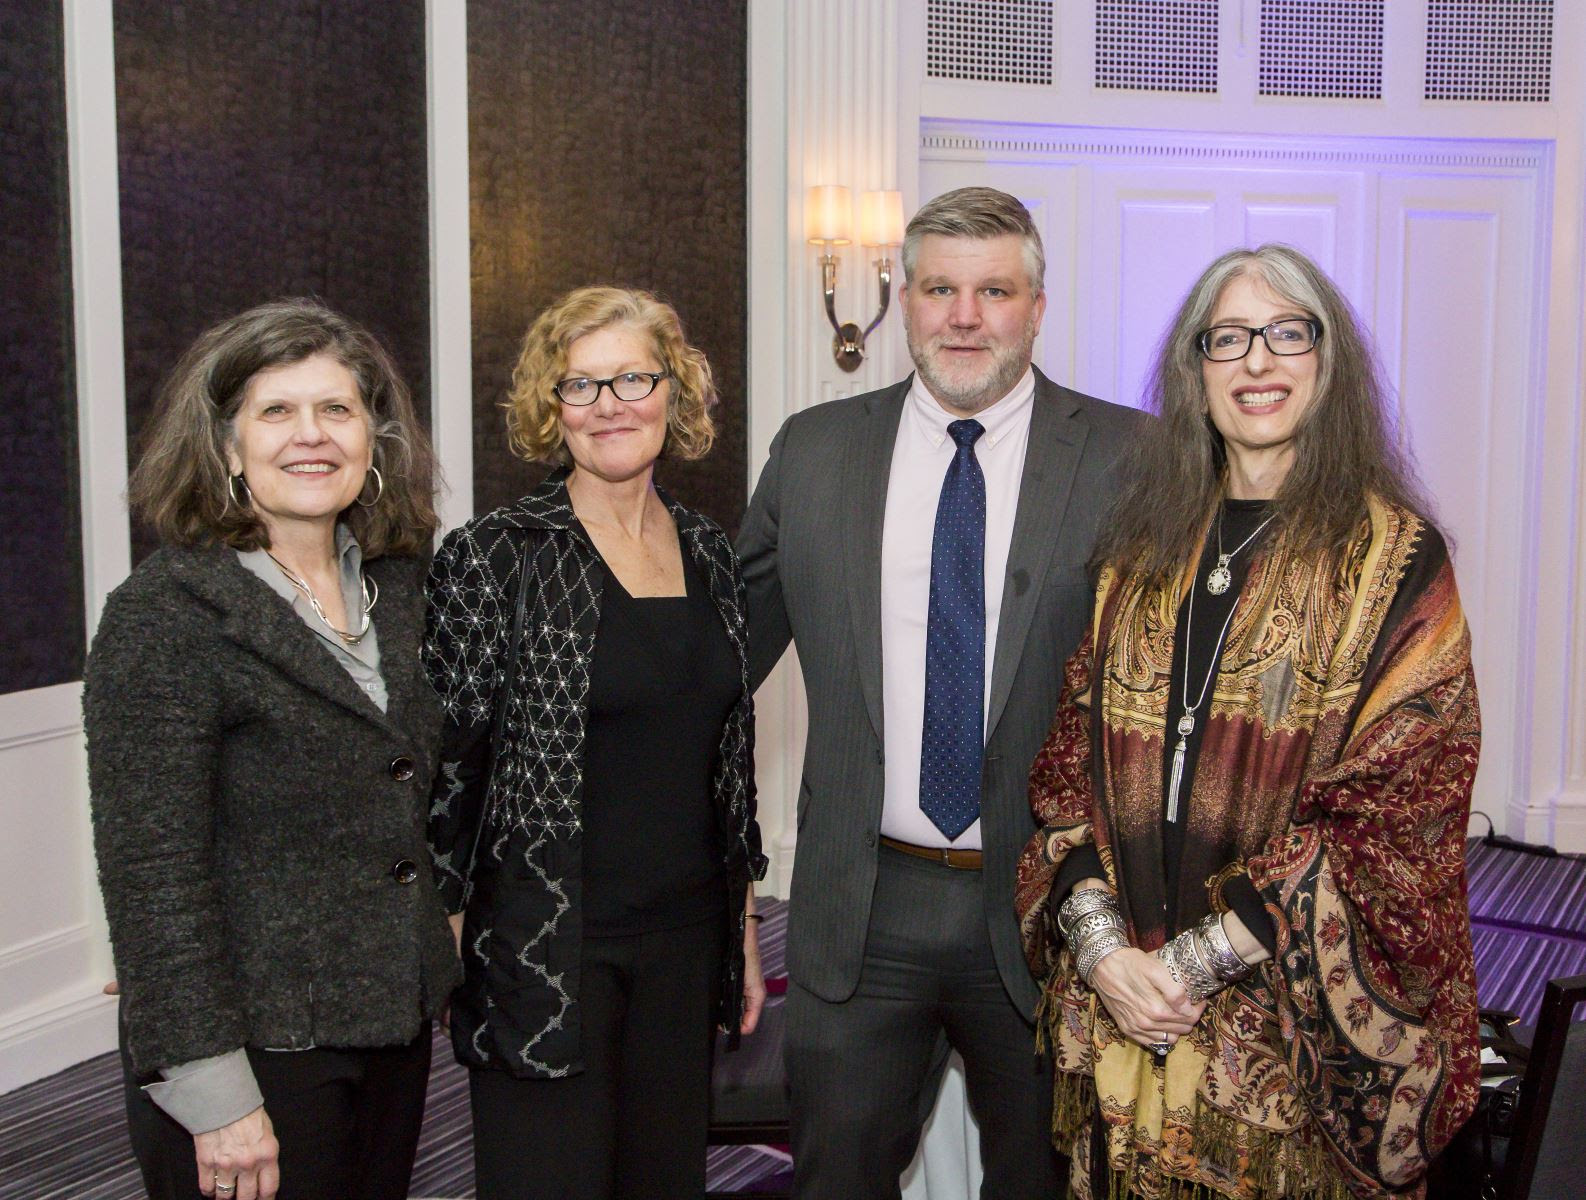 Leaders of Boston area businesses and organizations at Beacons of Light 2017